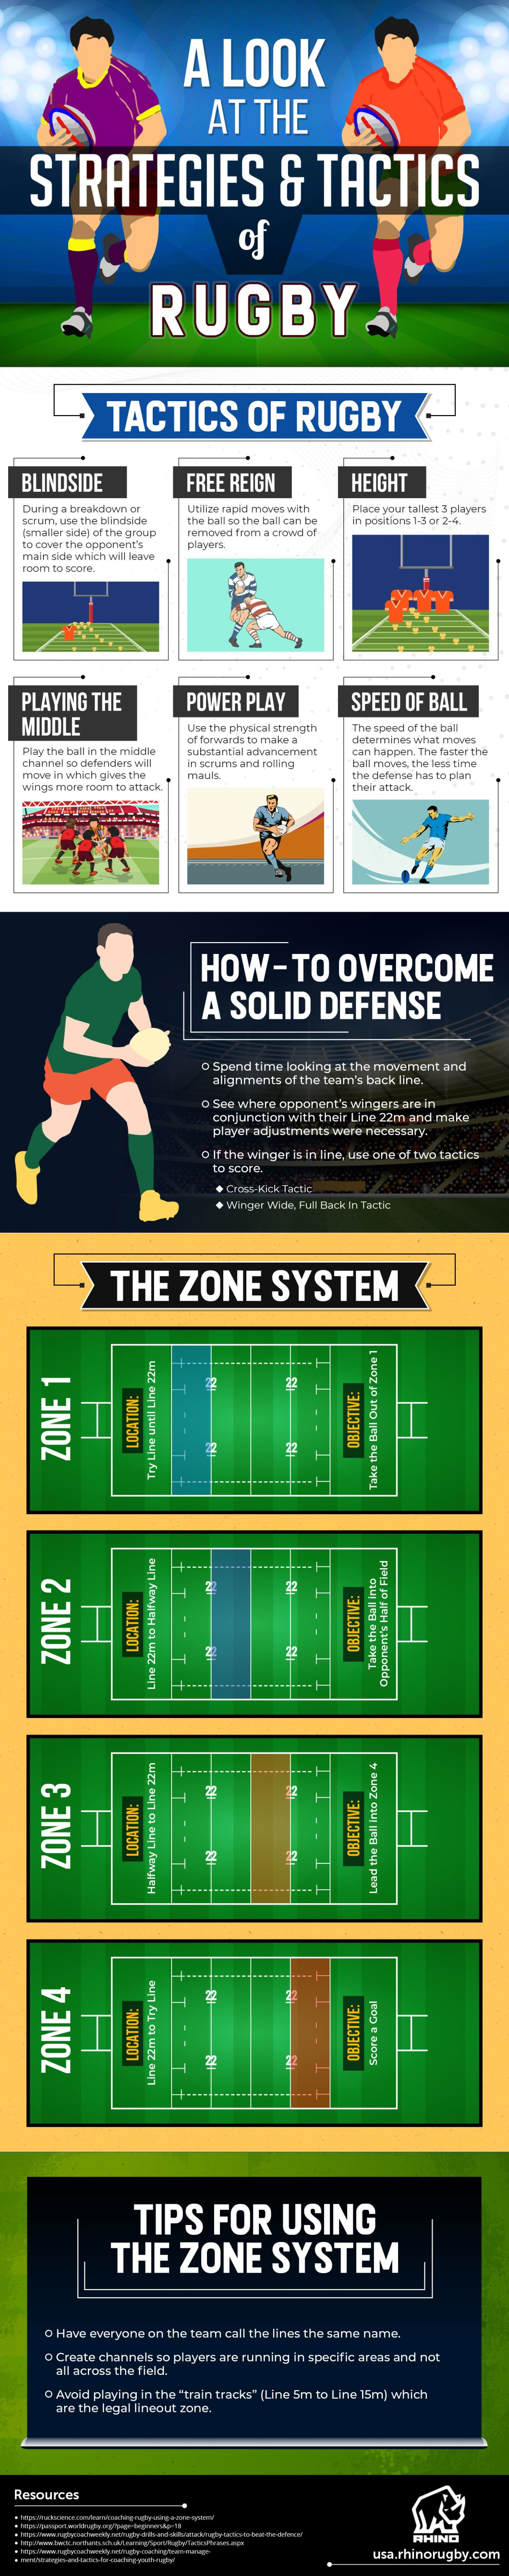 Brain and Brawn: Rugby Strategies and Tactics that Demand the Best of Both - Infographic